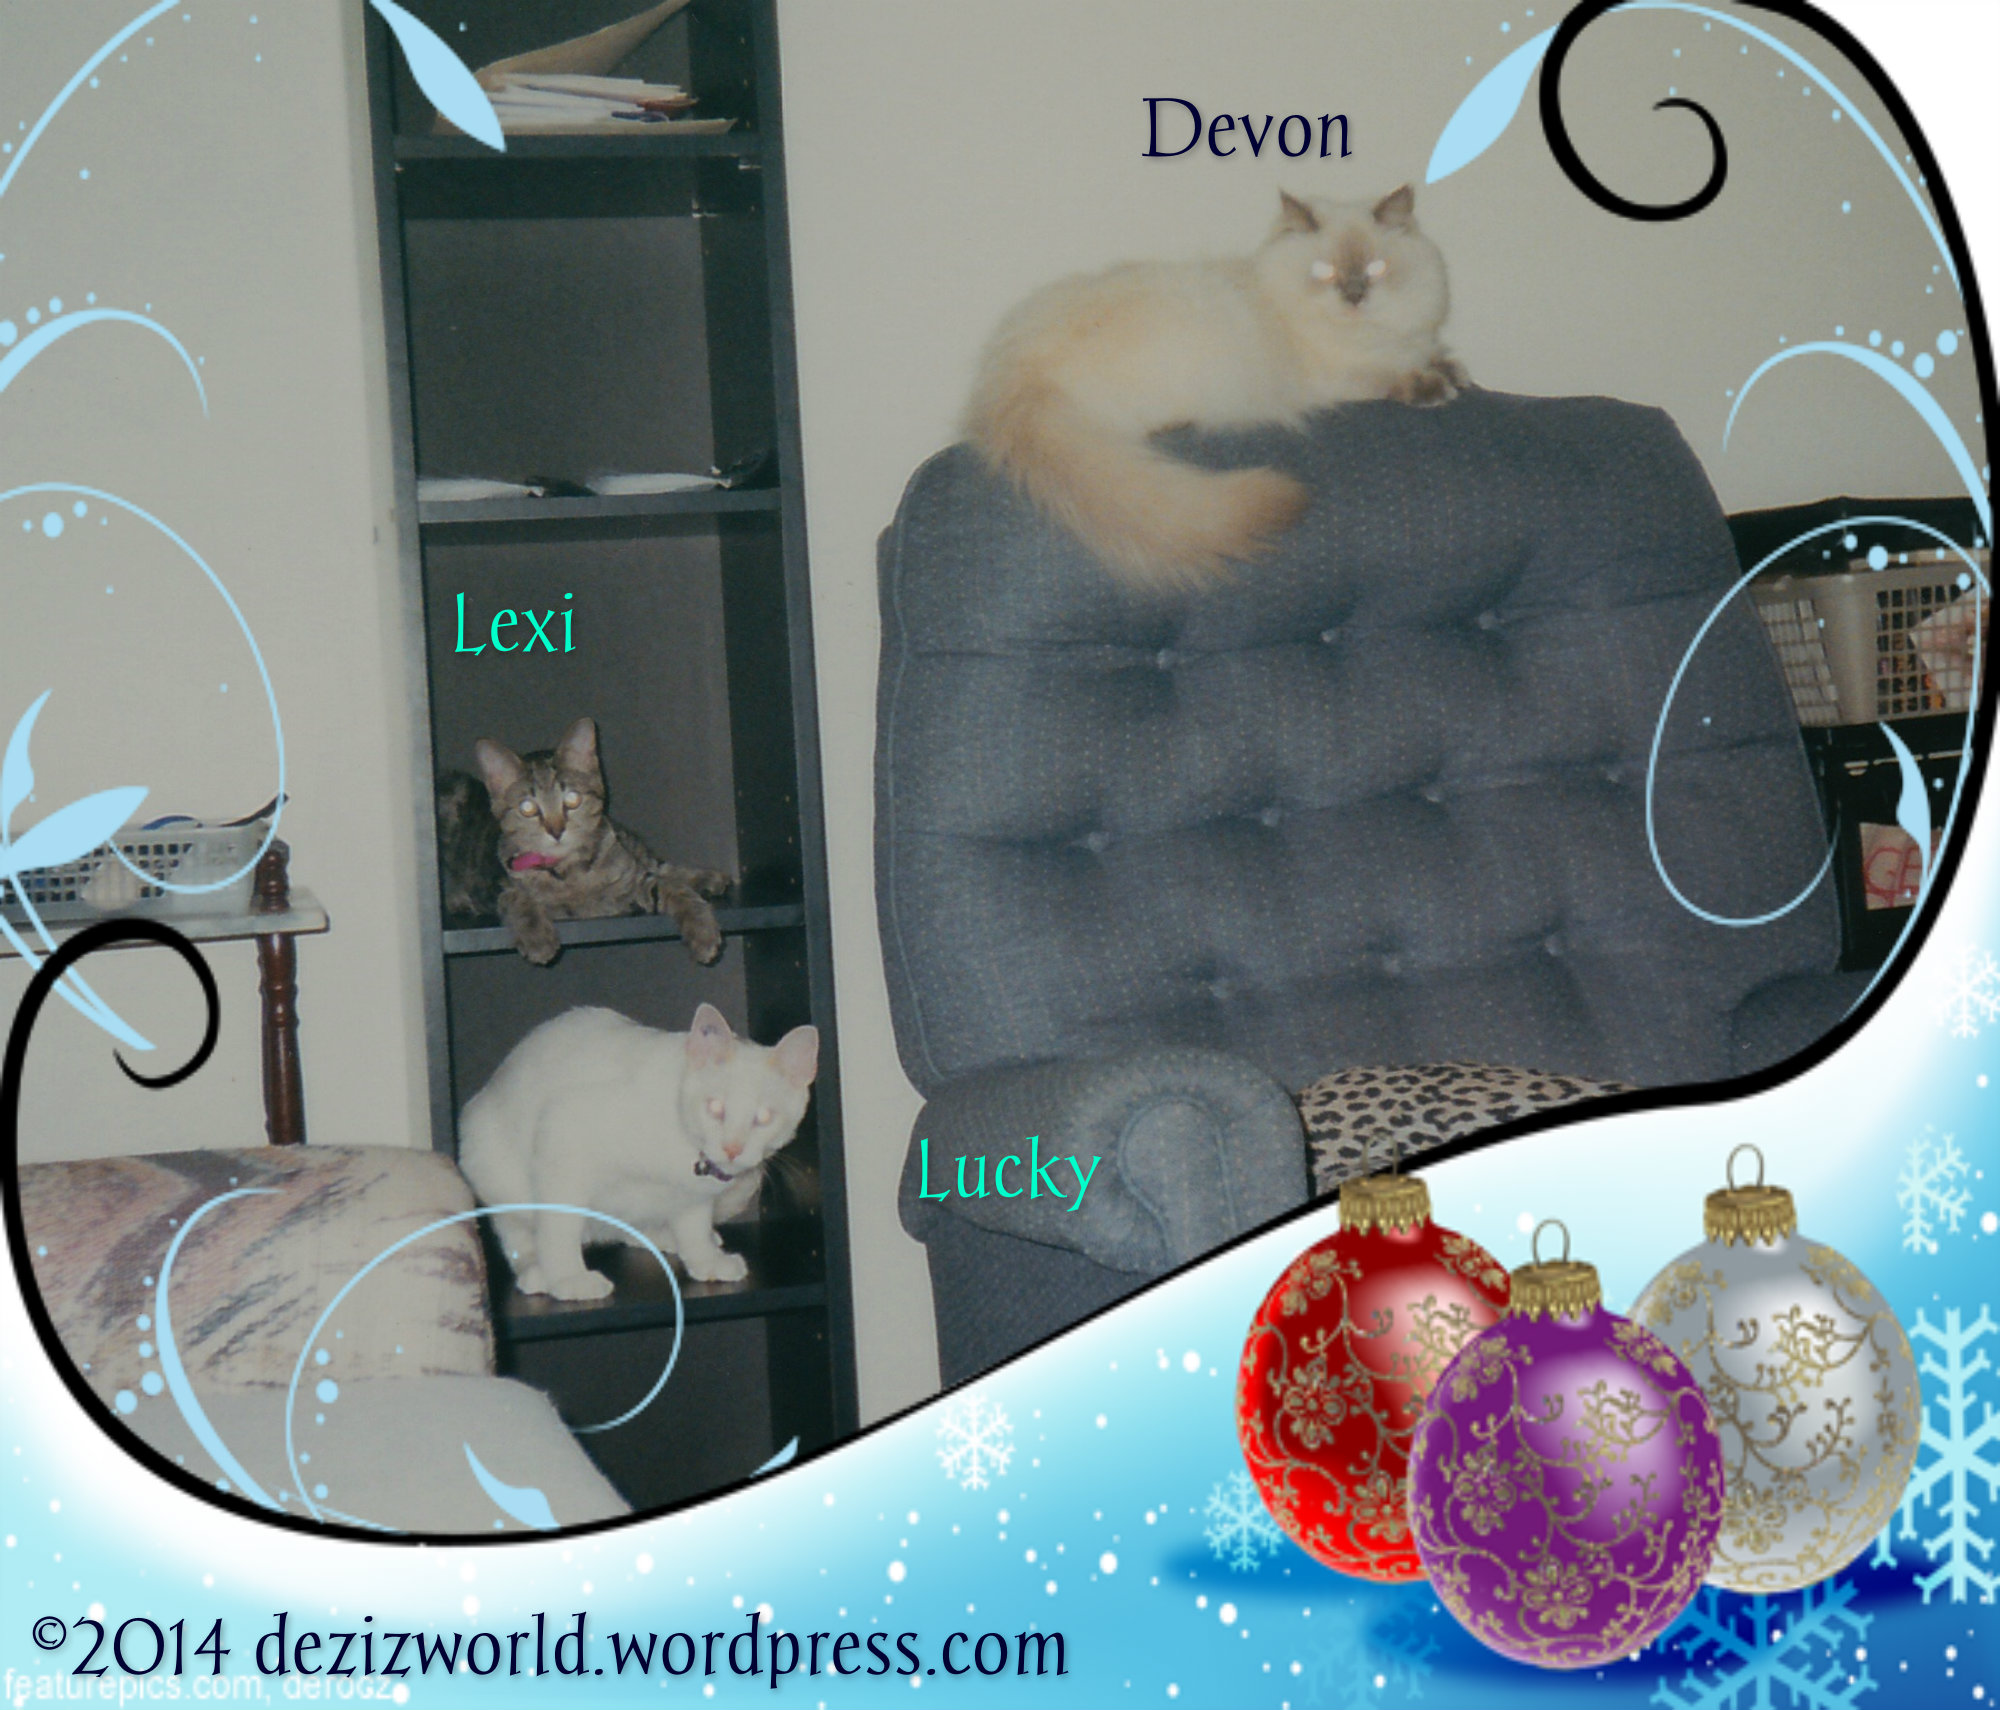 Devon, Lexi and Lucky